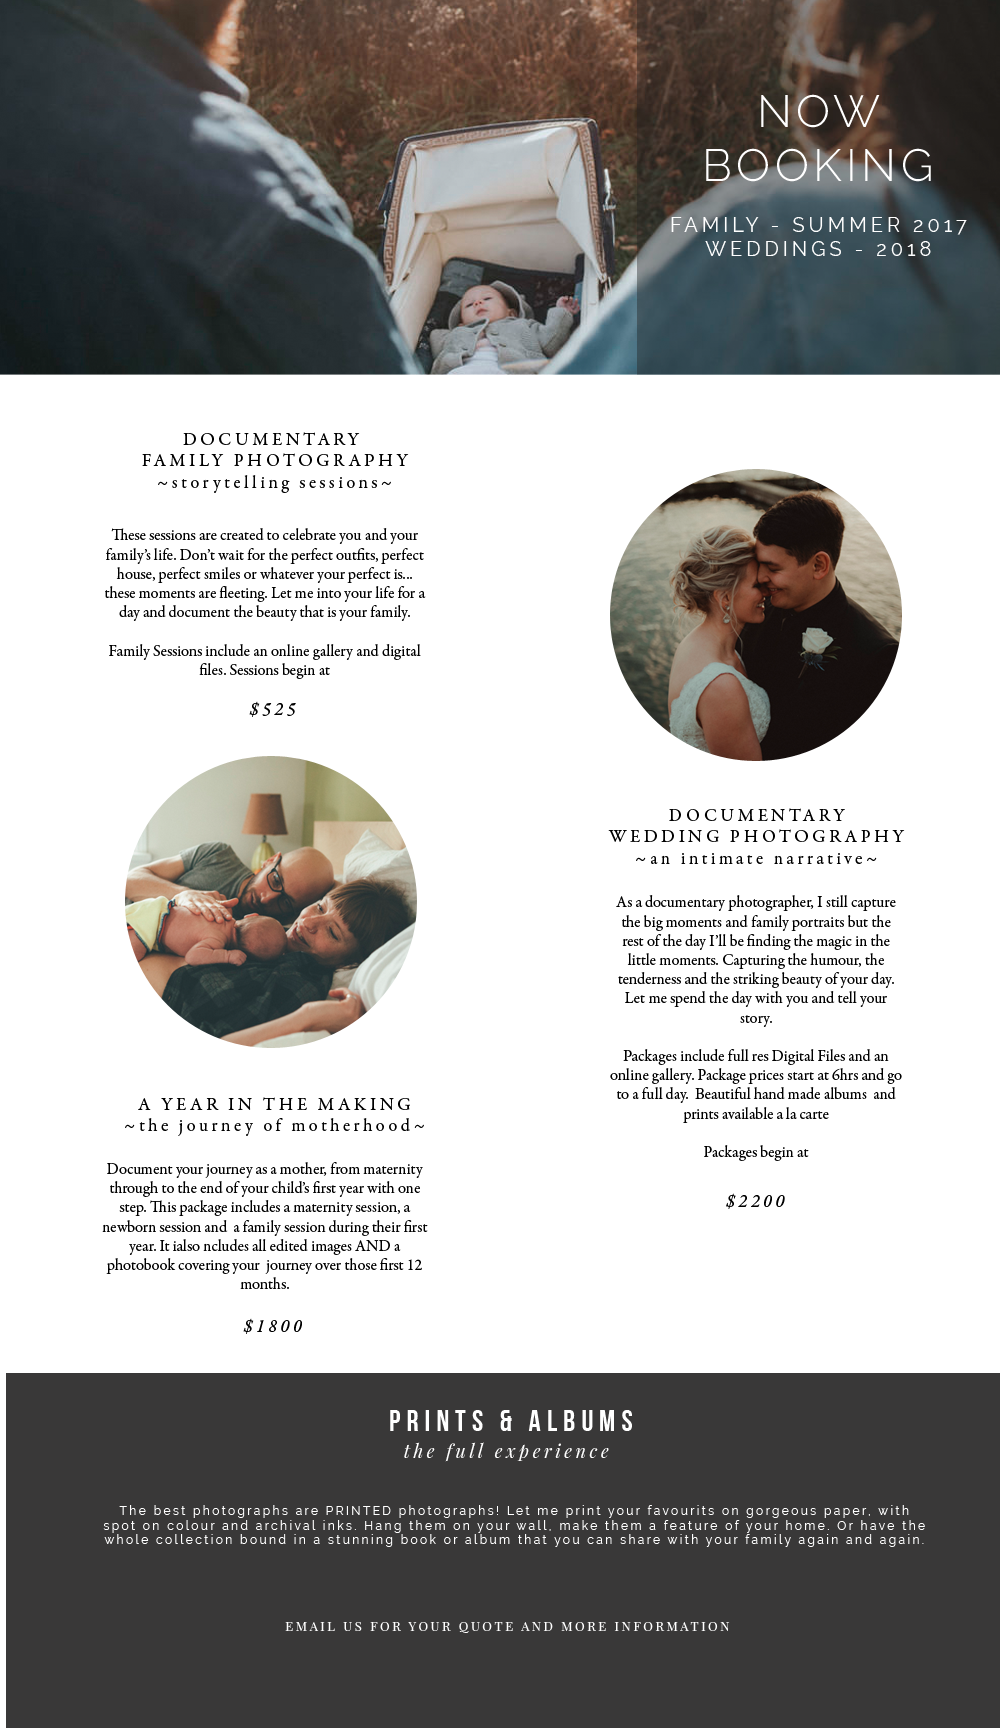 Pricing for family and wedding photography